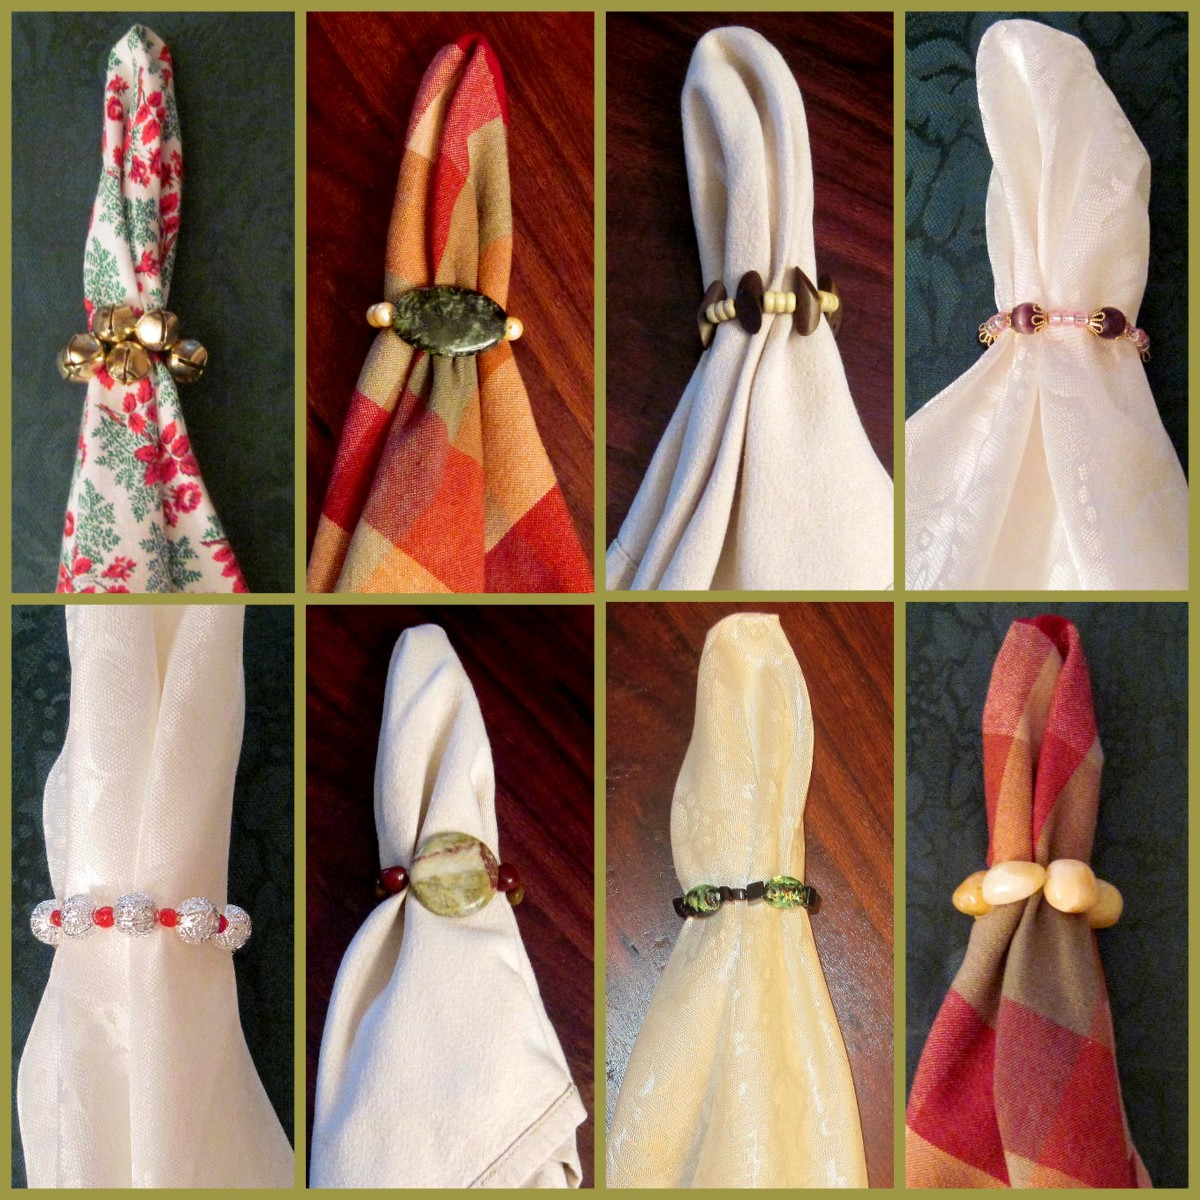 How to make napkin rings step by step instructions